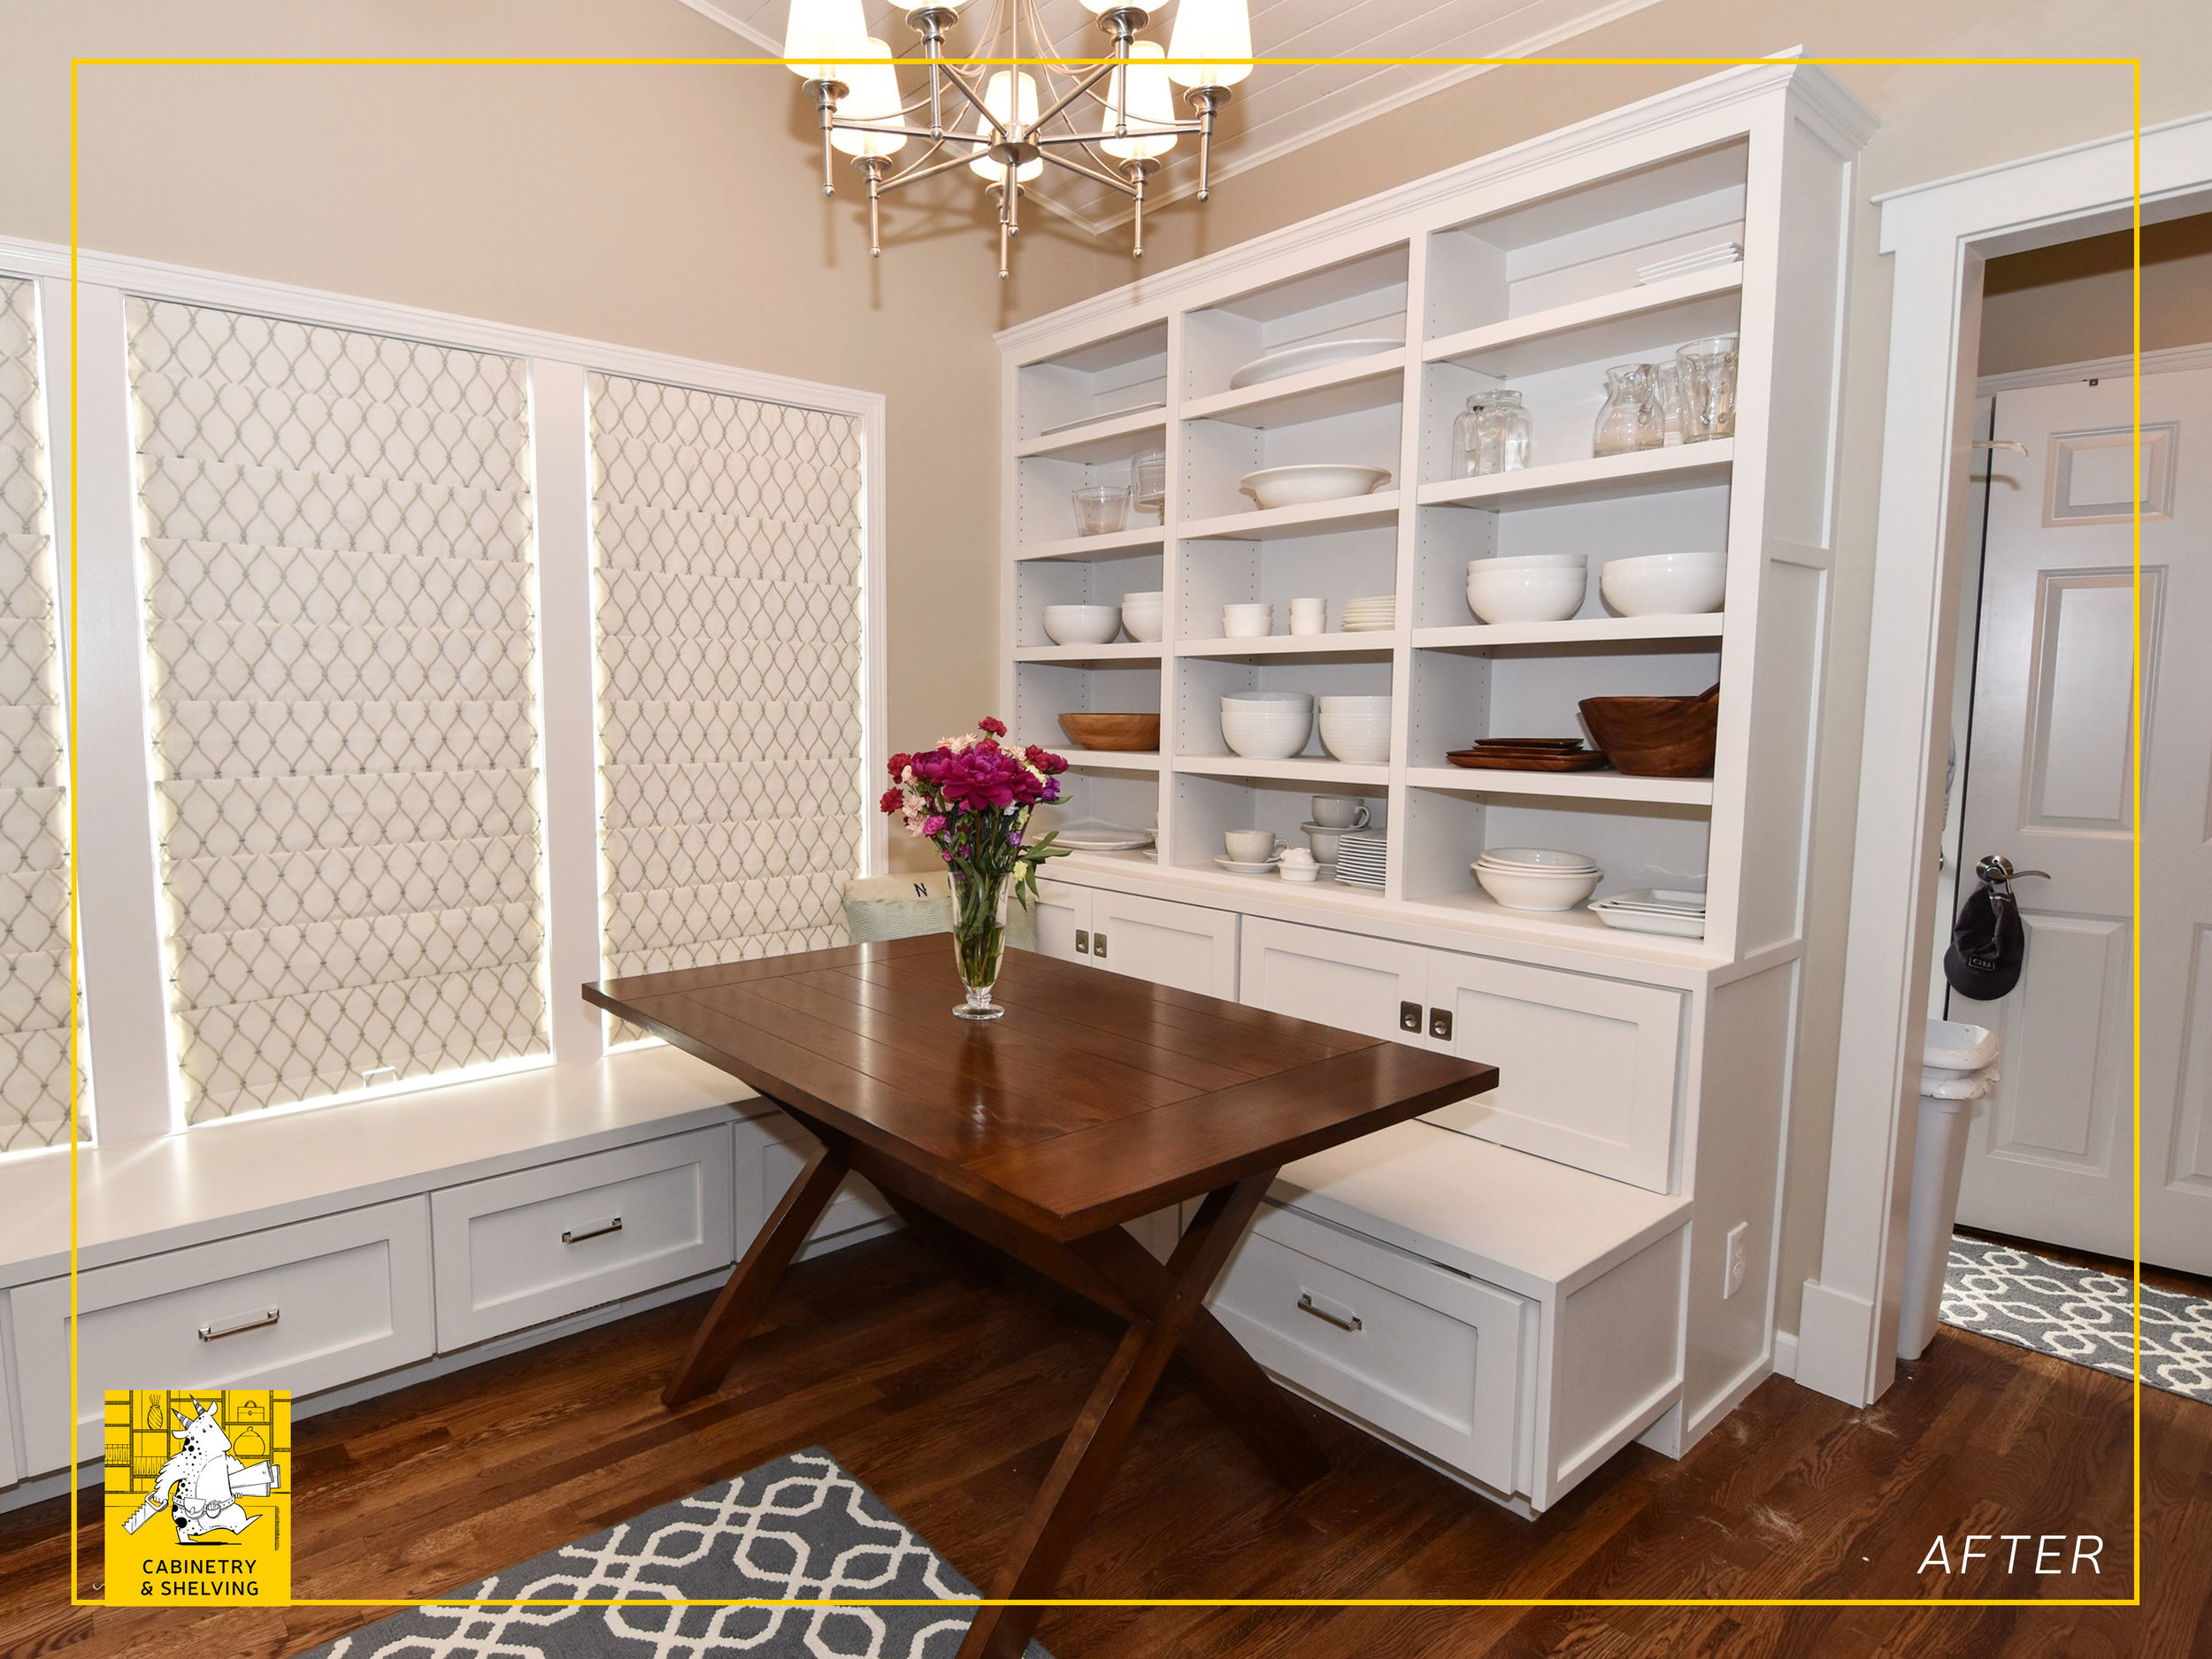 cabinetry 5 after 1.jpg